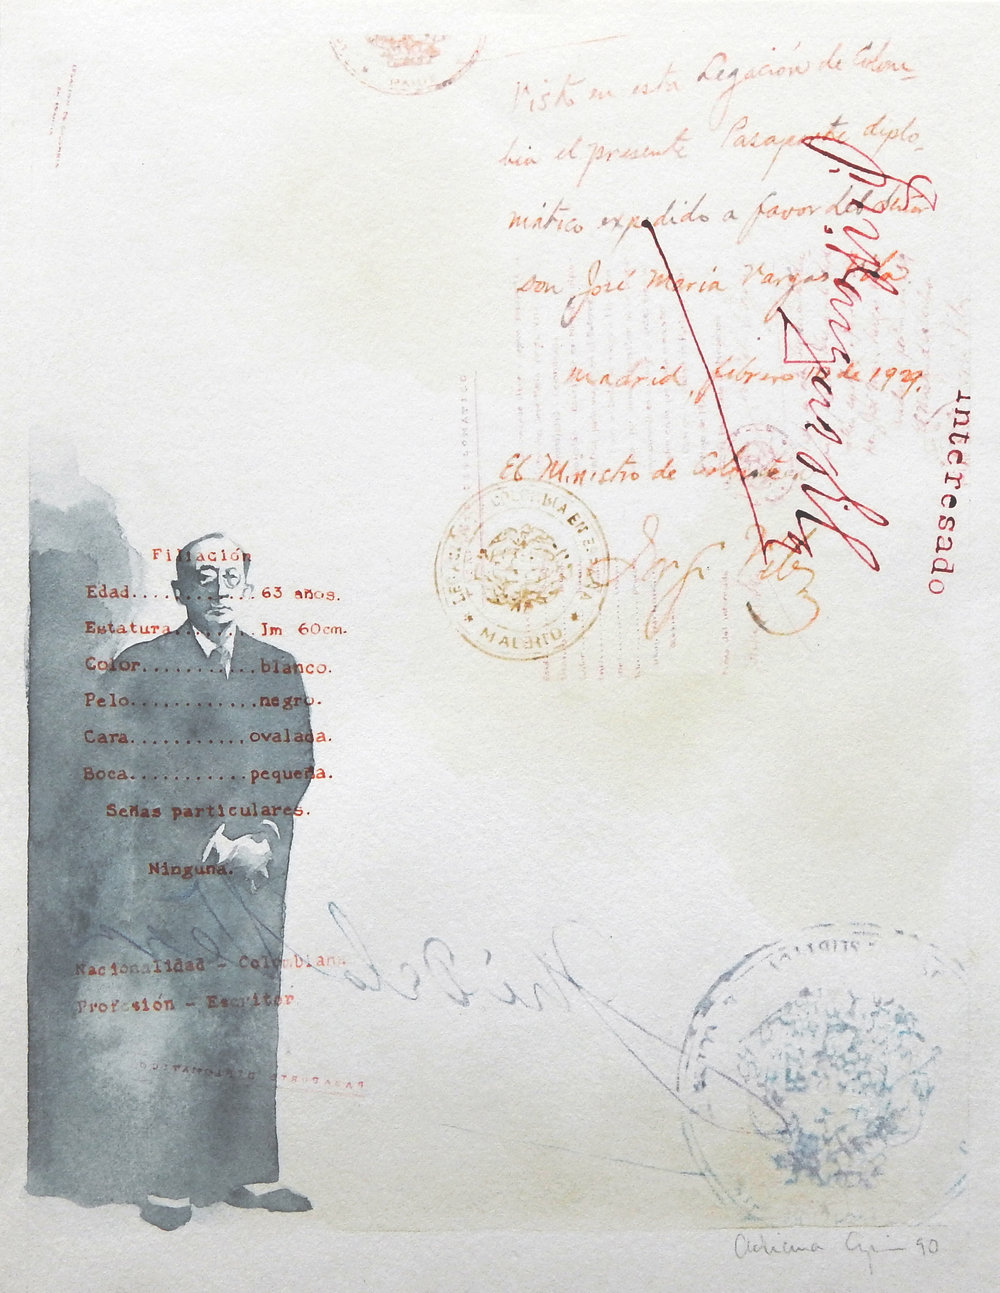 Passport, 1990, Watercolor, pen and ink, colored pencils on paper, 12 x 9.4 inches, (30.5 x 23.8 cm)